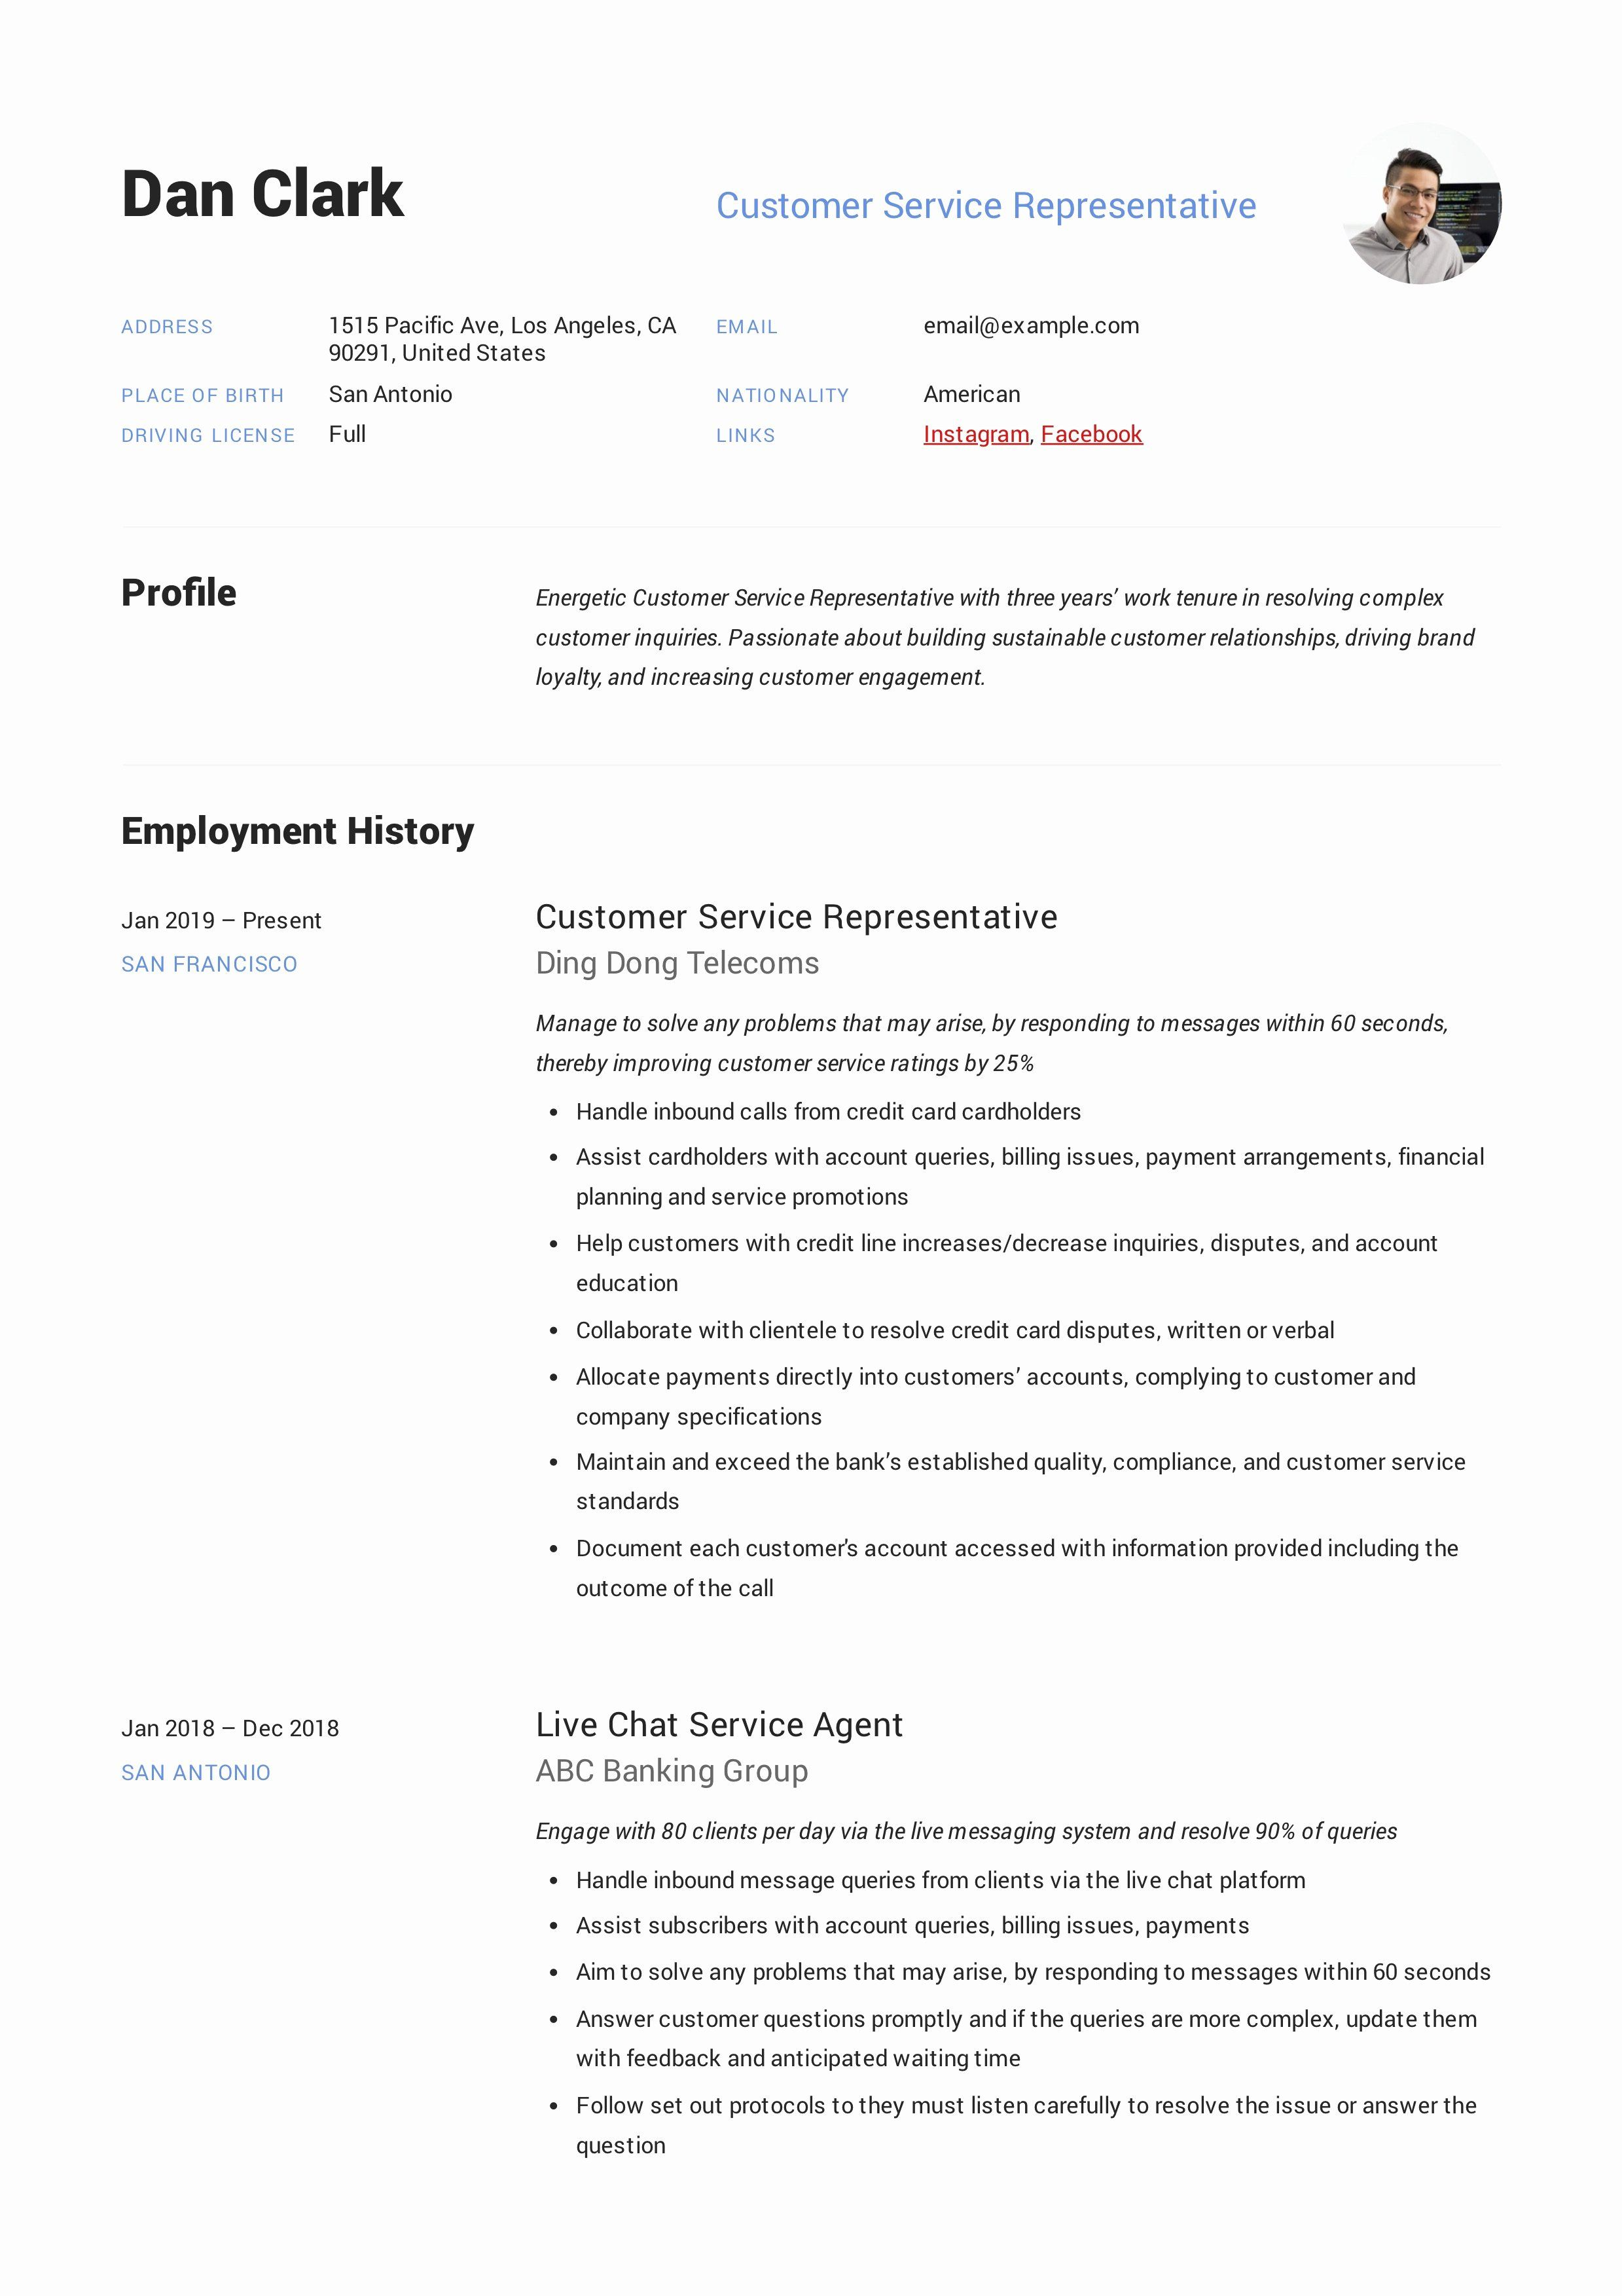 Guest Service Representative Resume Luxury How to Customer